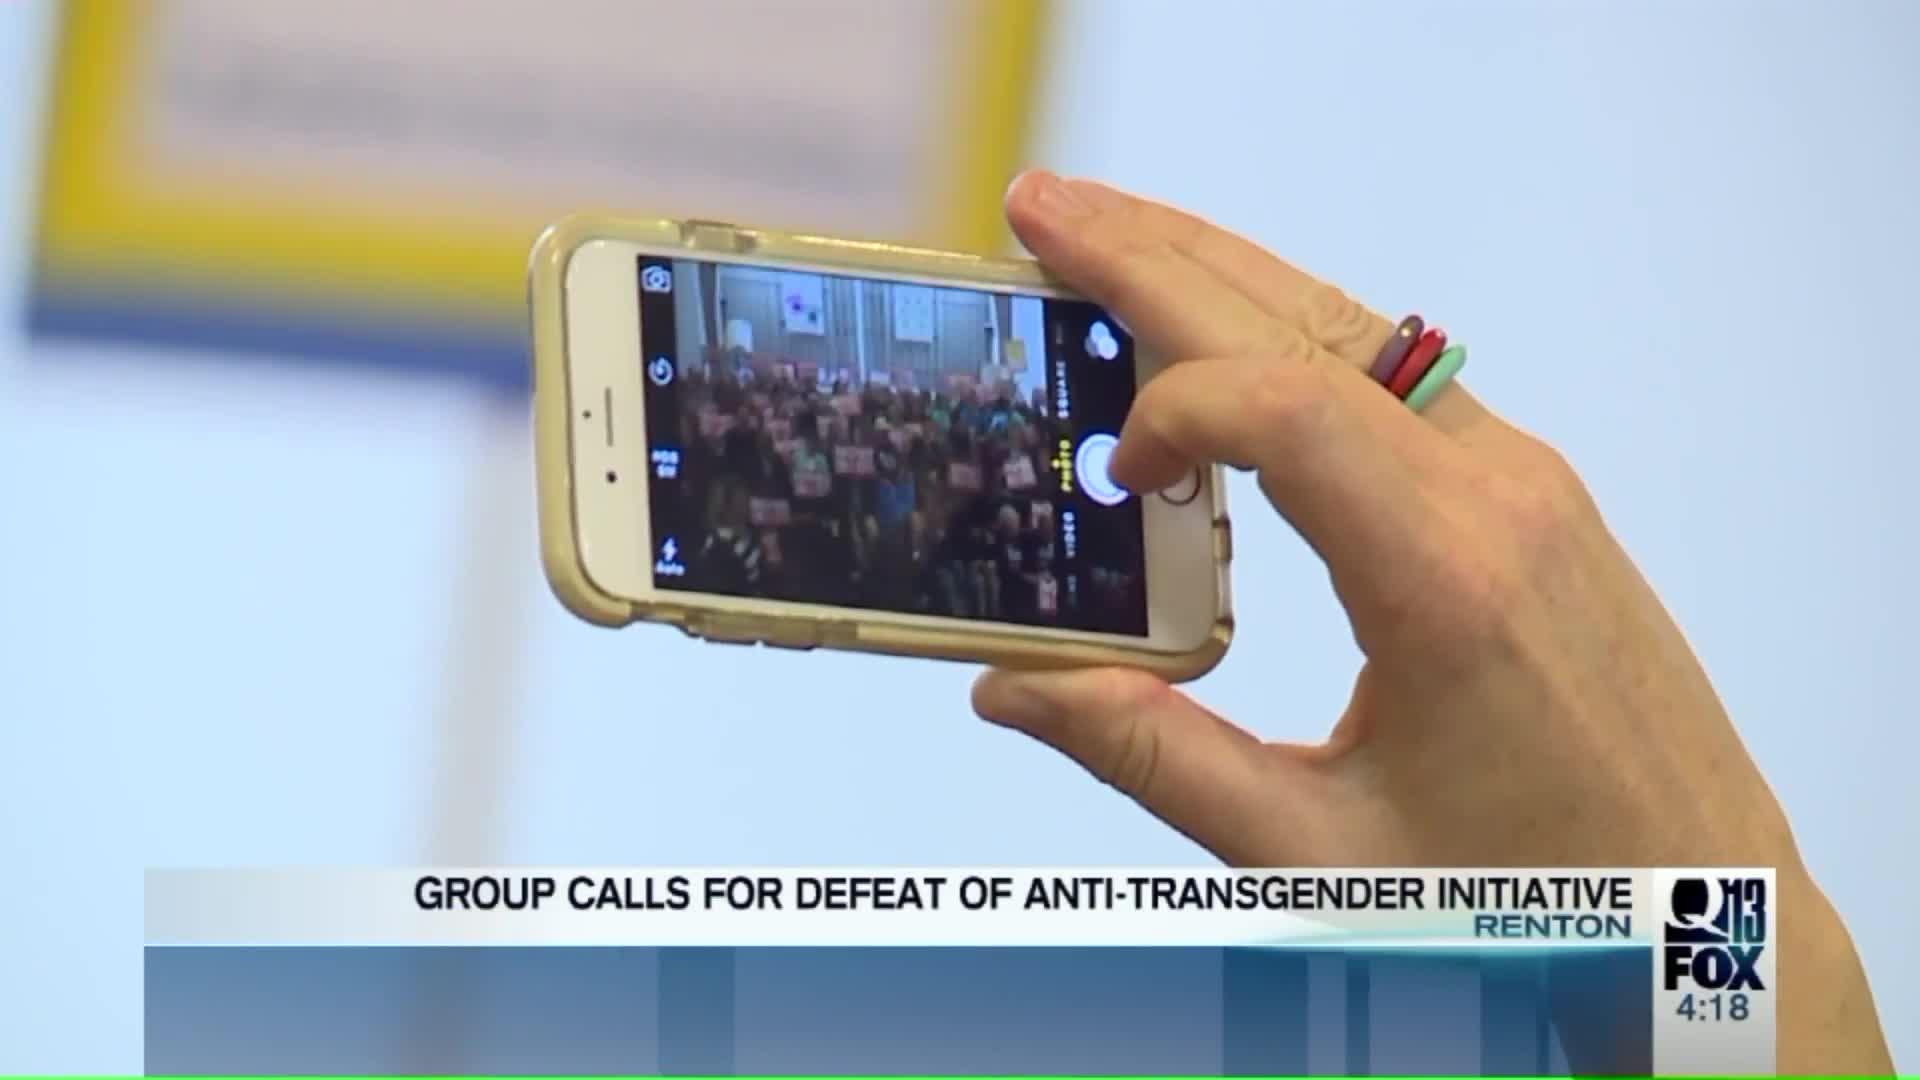 Seattle Group Says New Initiative Targets Transgender People